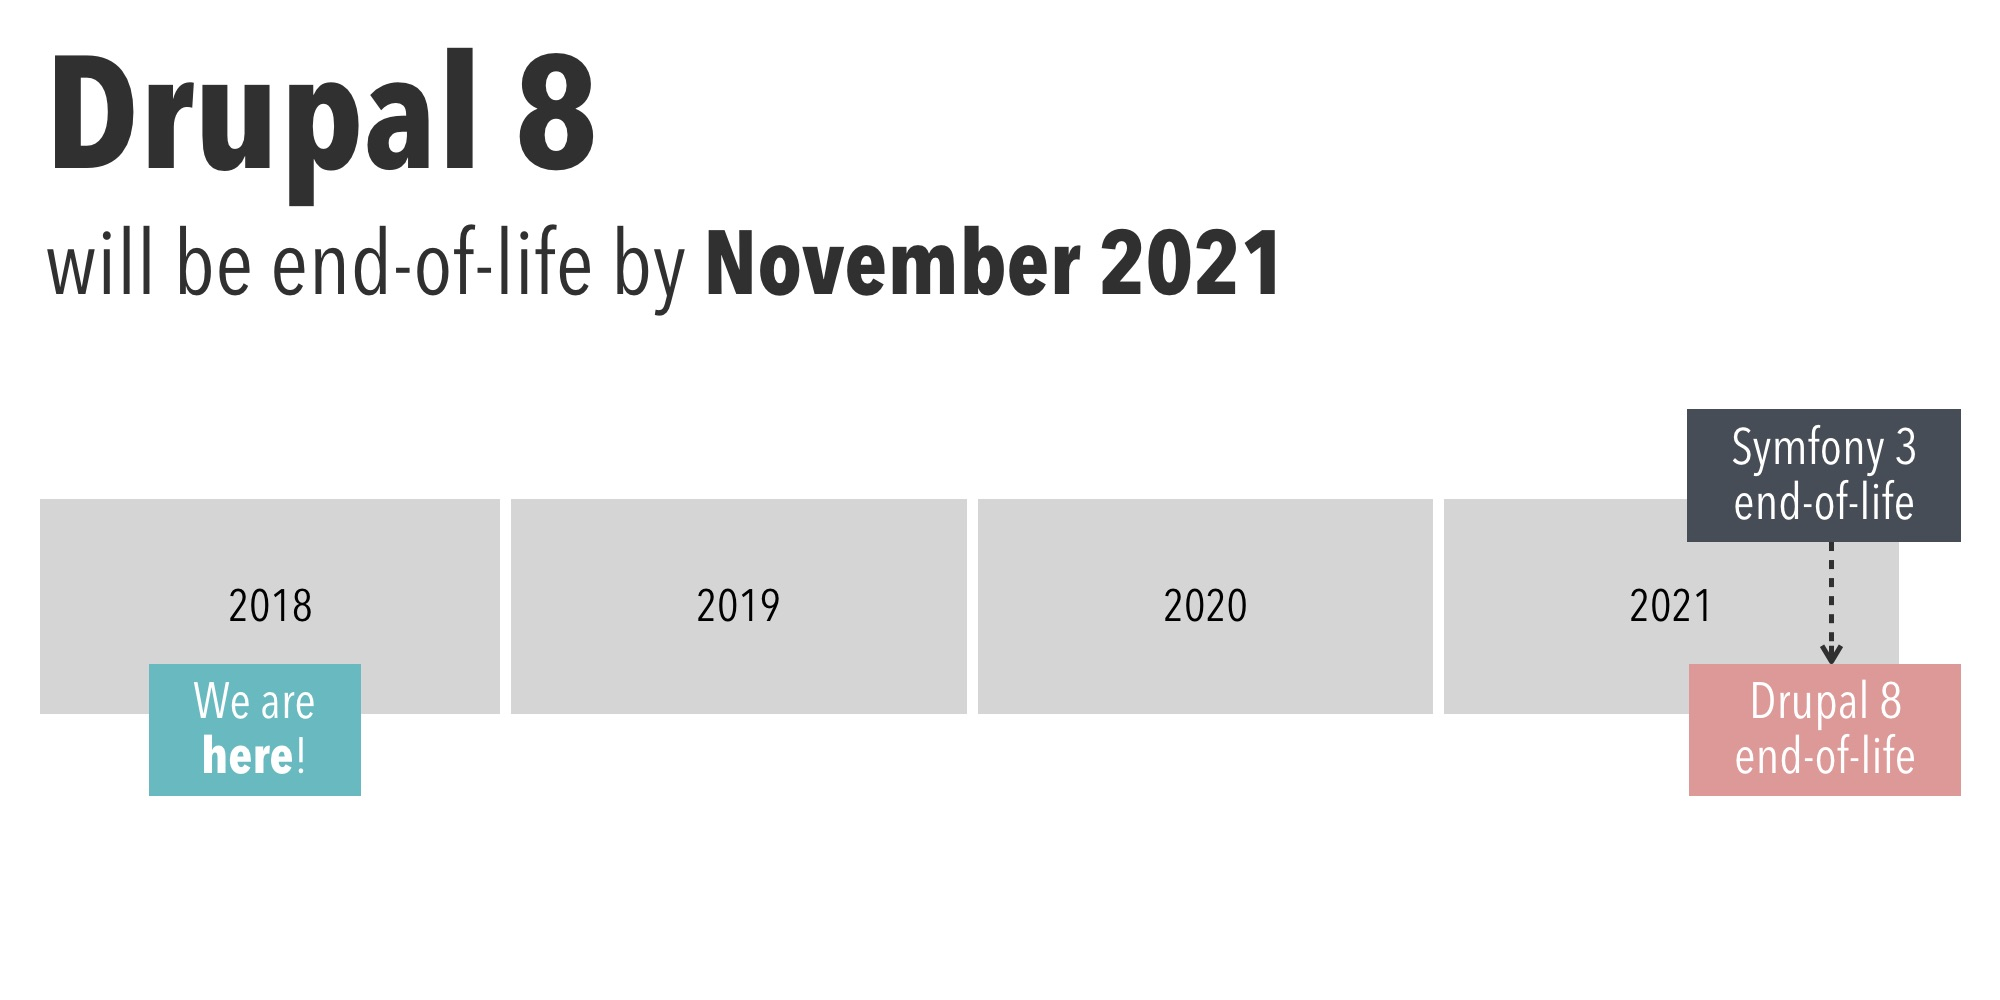 Drupal 8 will be end-of-life by November 2021